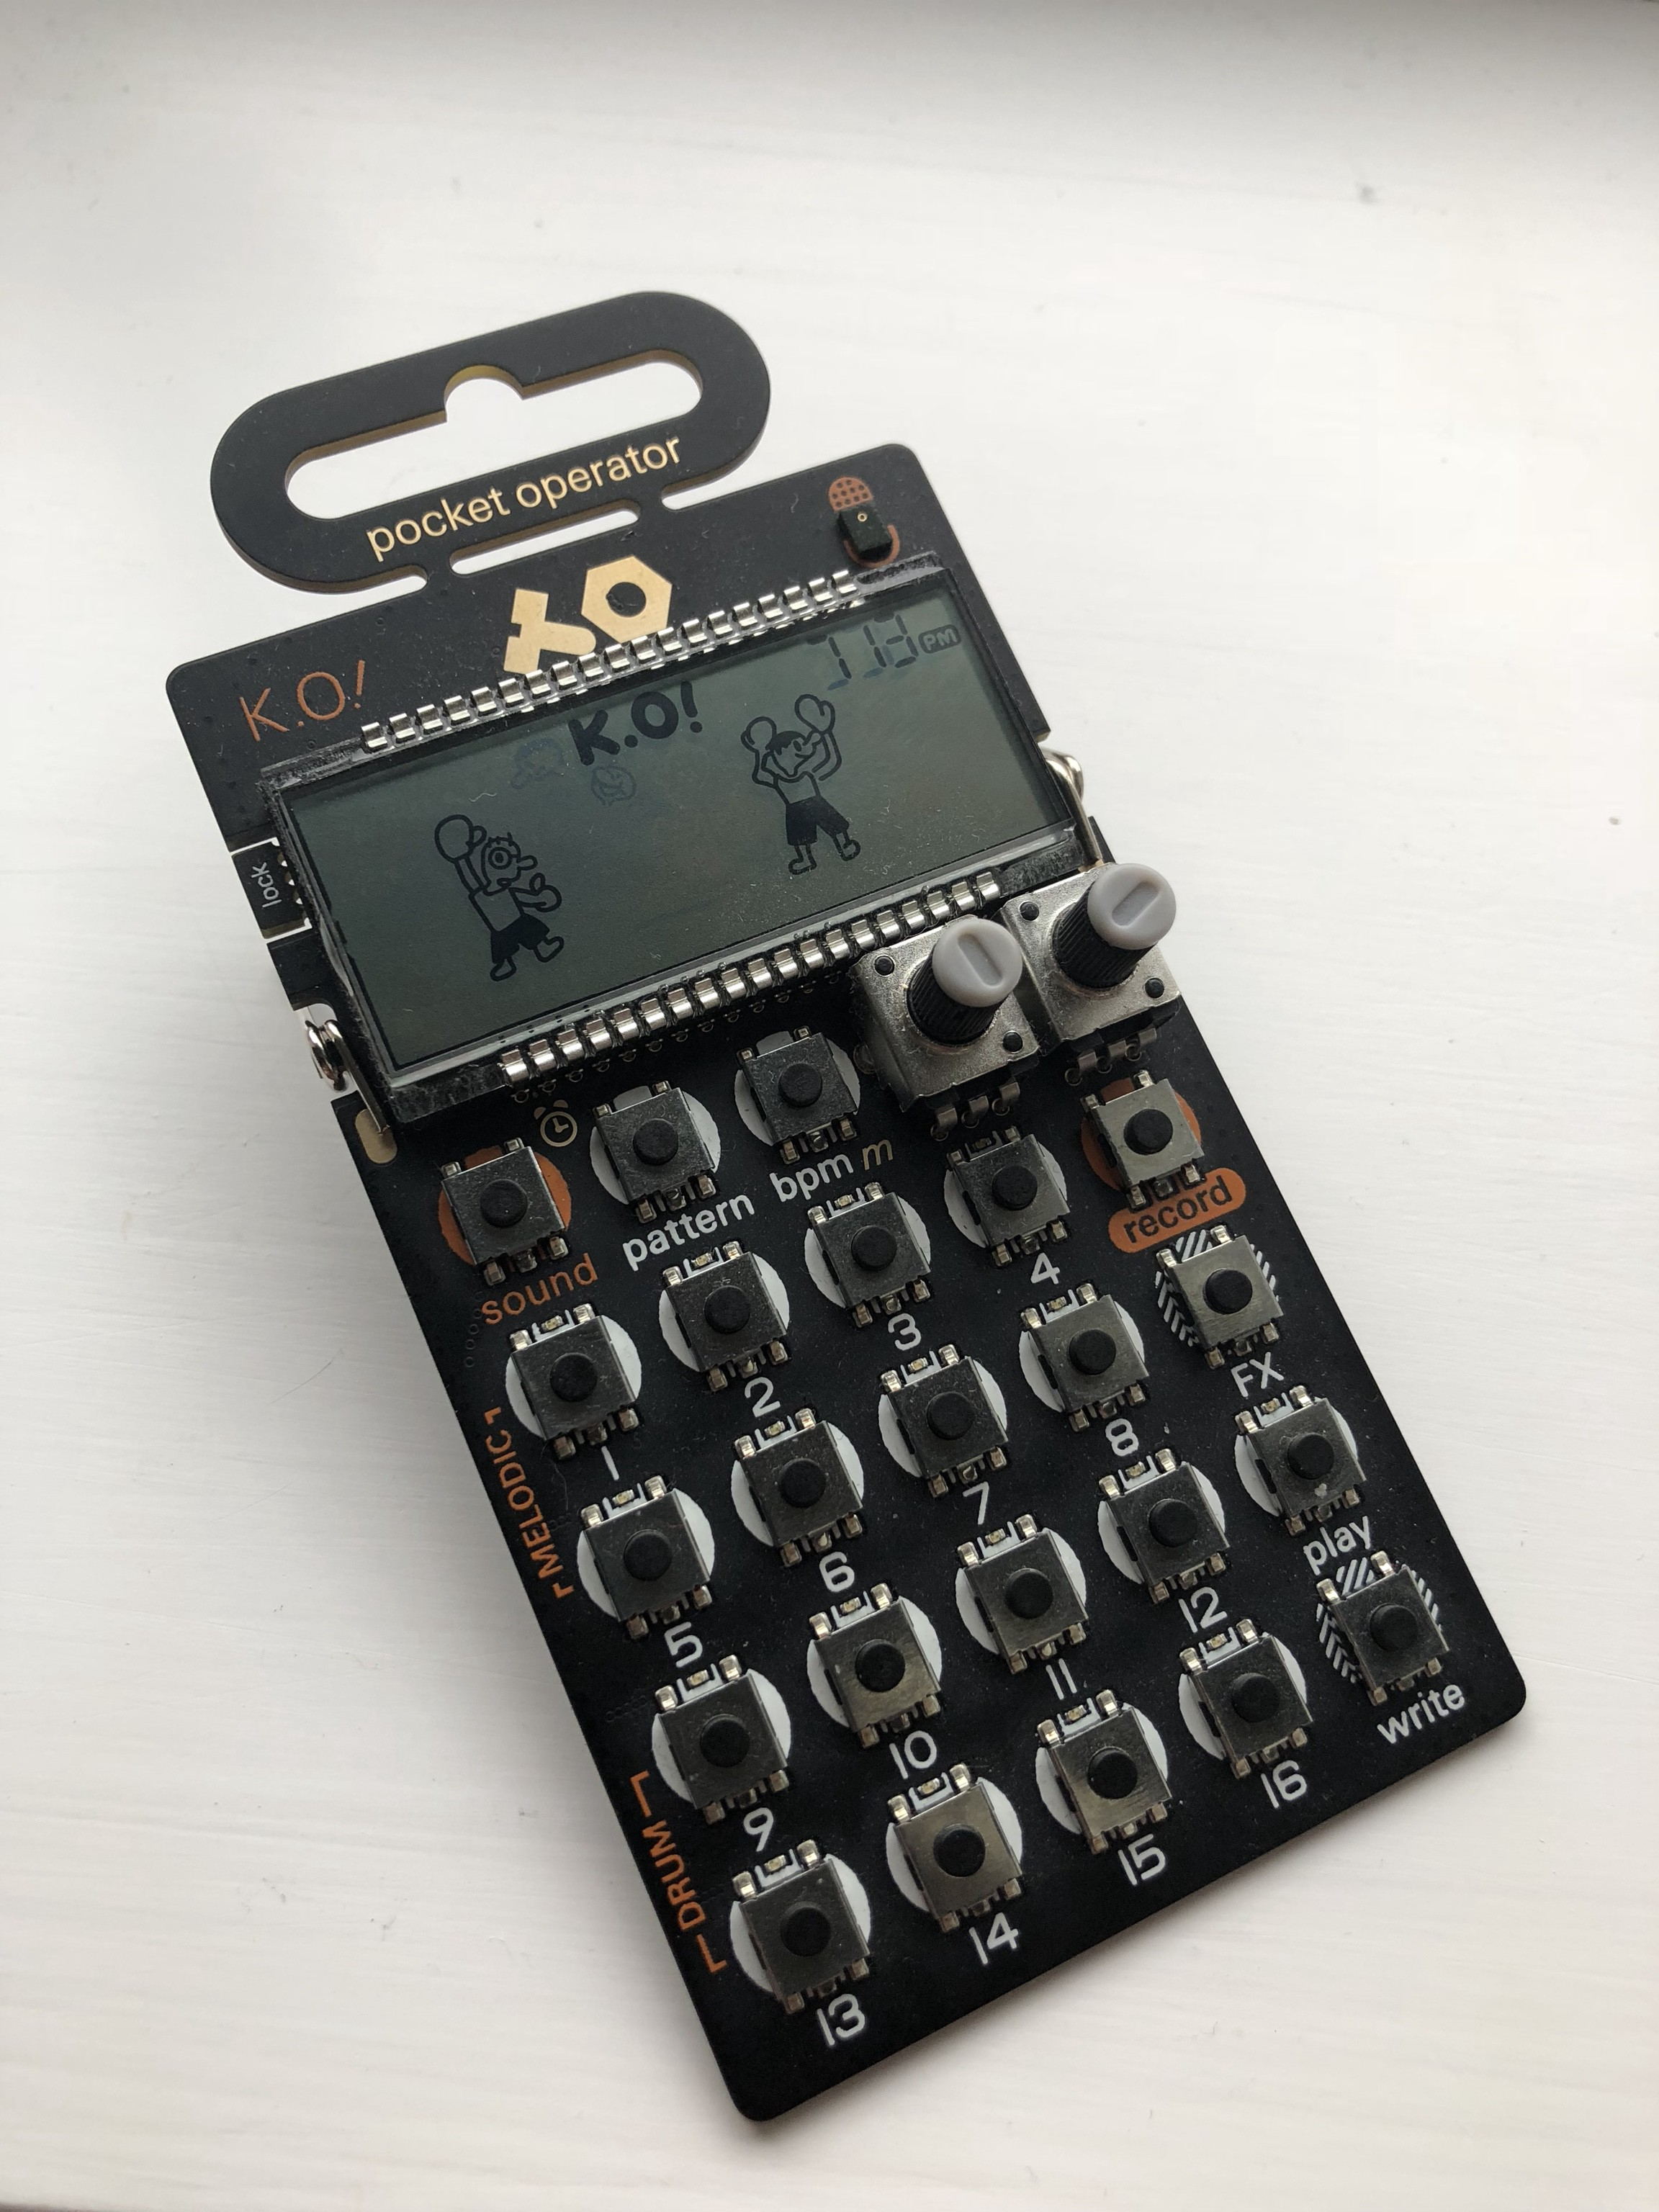 The Complete Teenage Engineering PO-33 K O! Guide